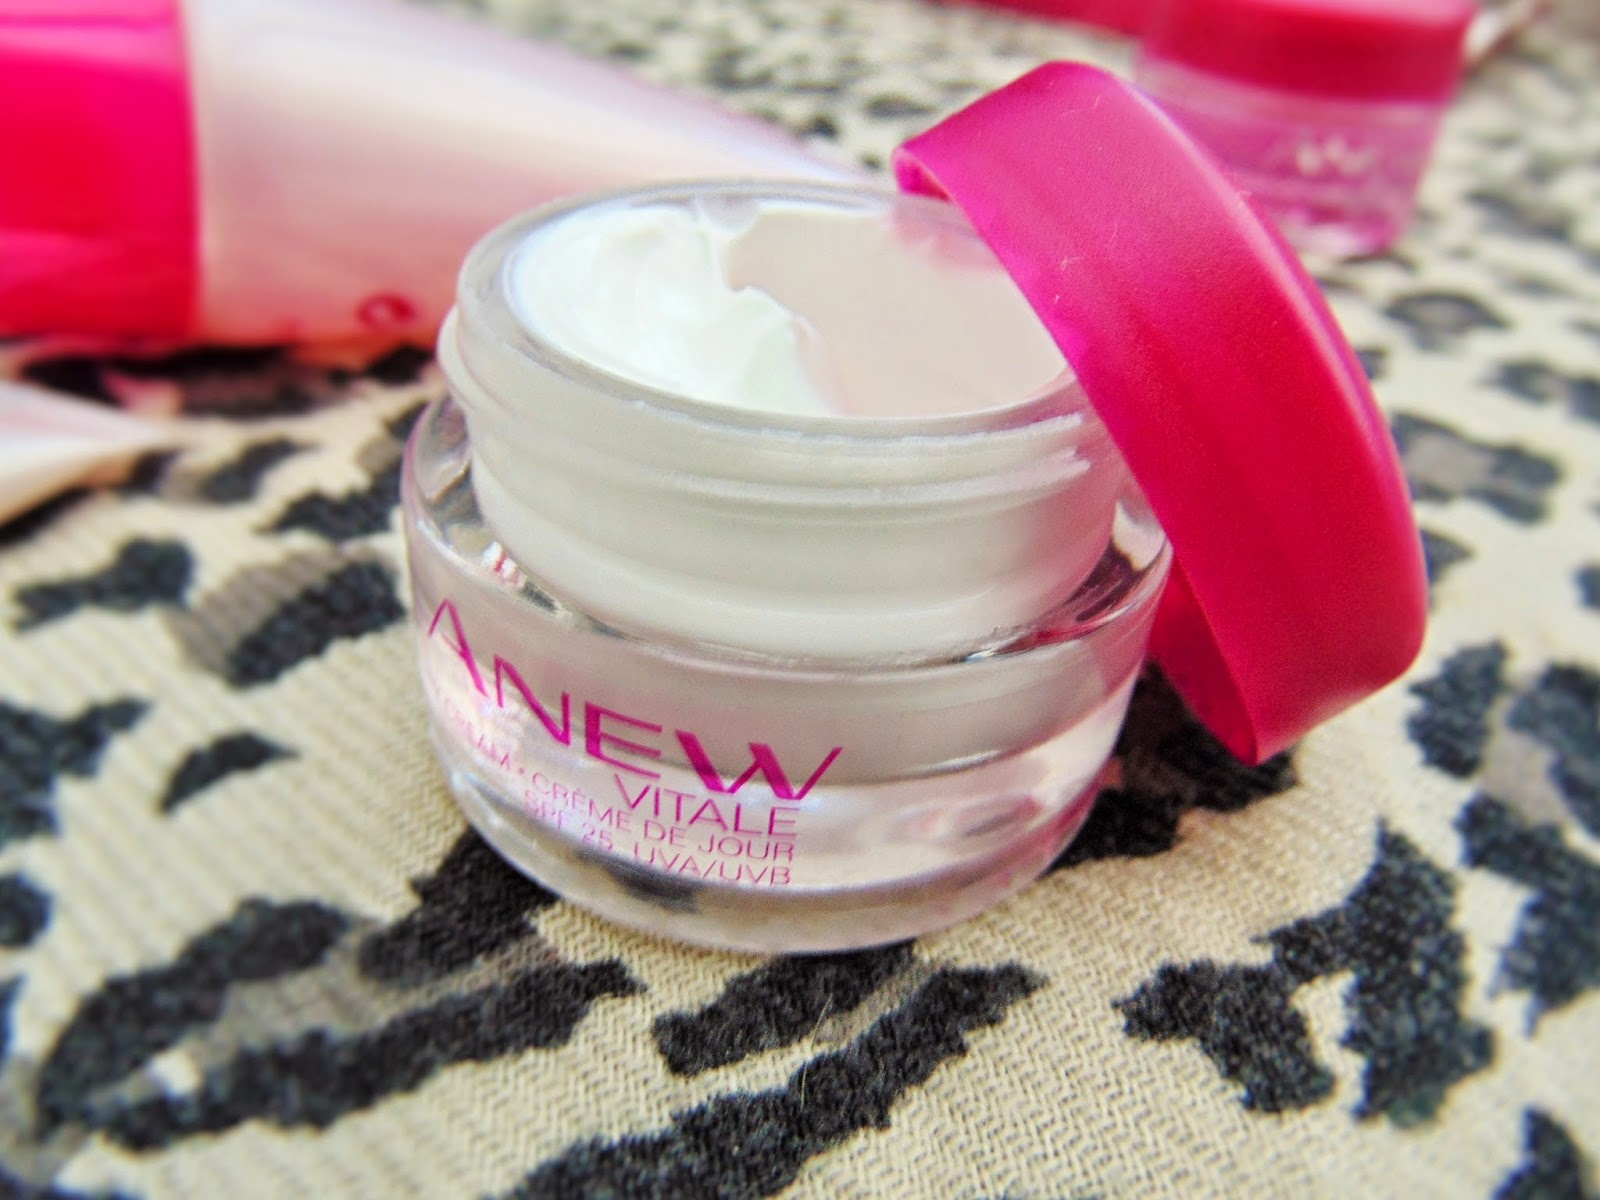 avon anew vitale skincare kit day cream